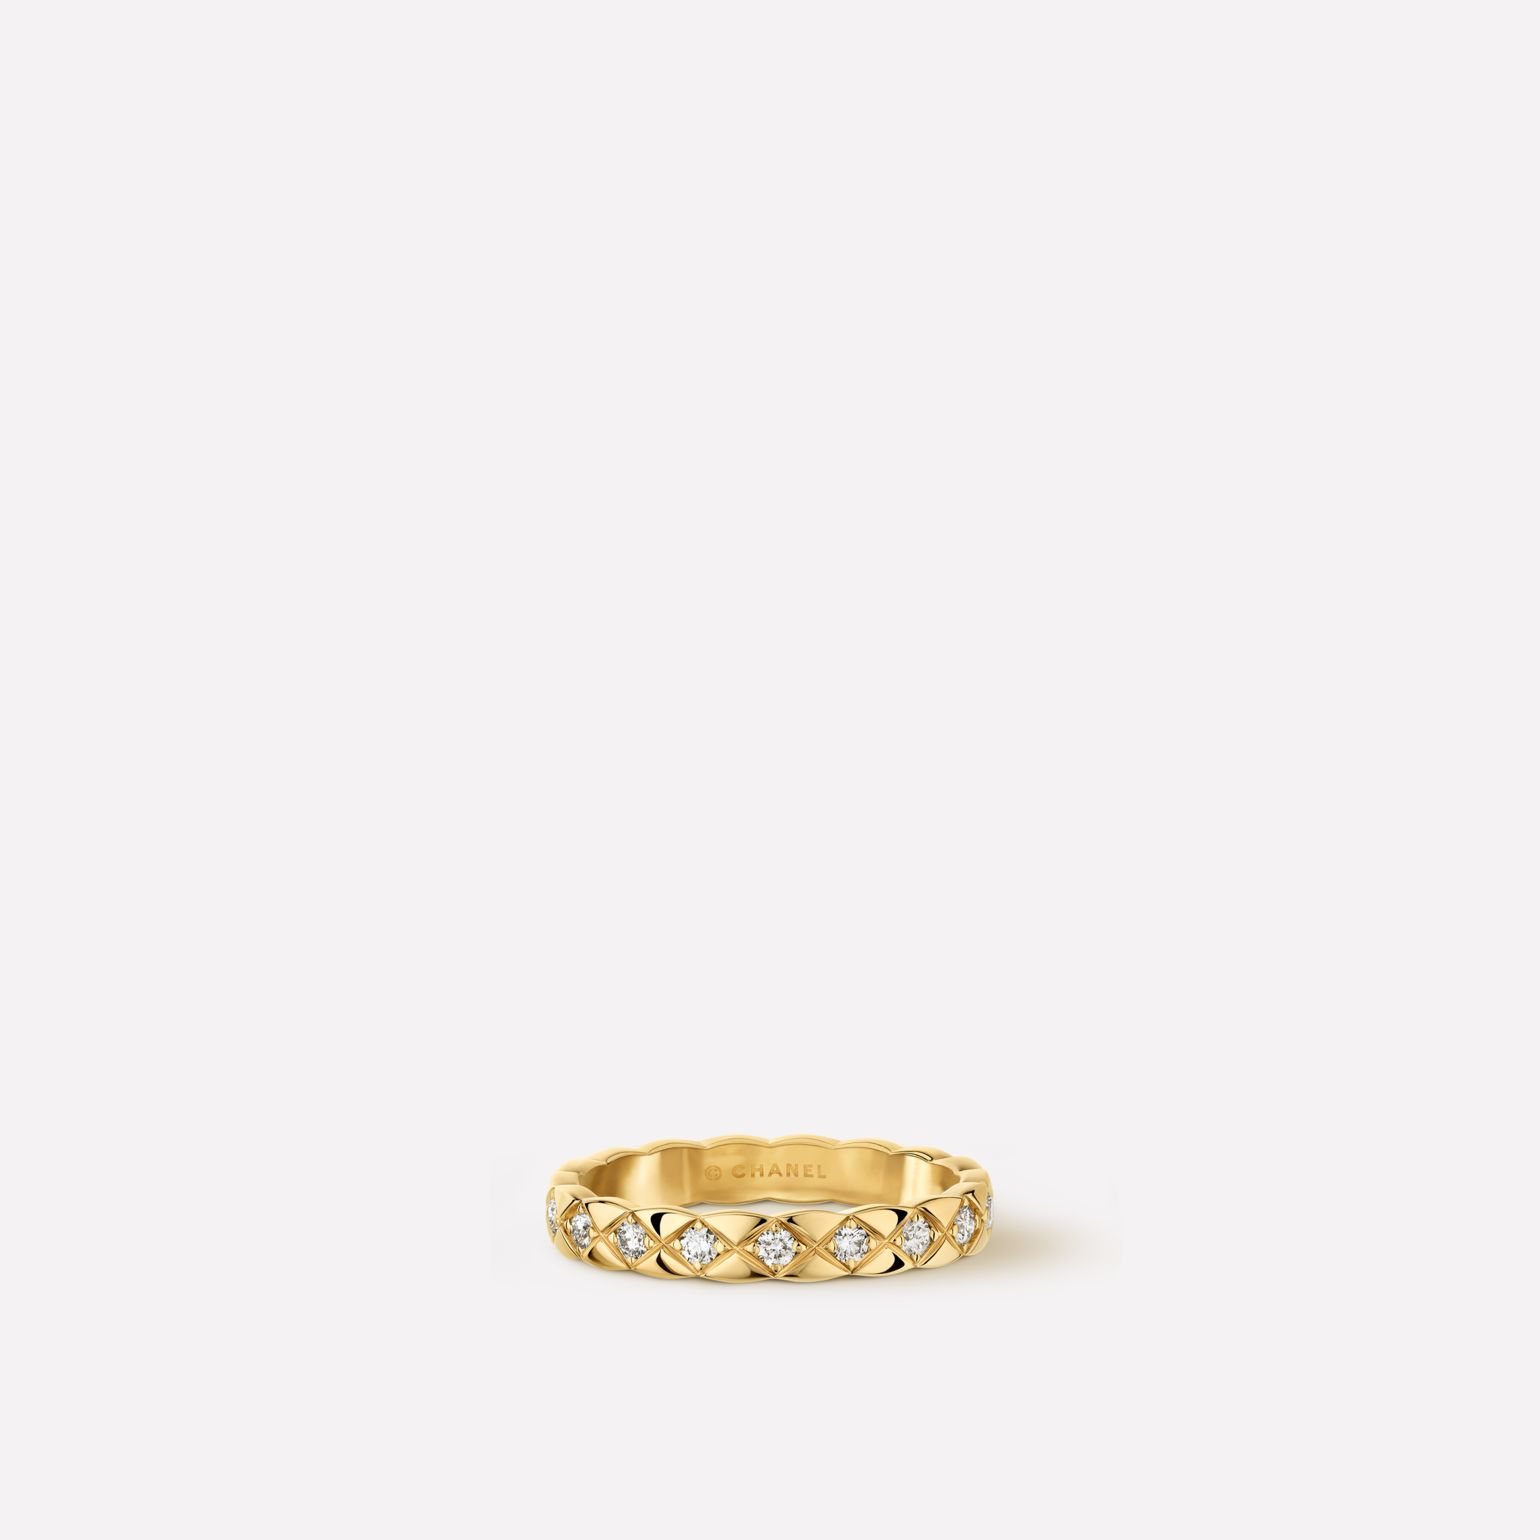 Coco Crush ring Quilted motif, mini version, 18K yellow gold, diamonds